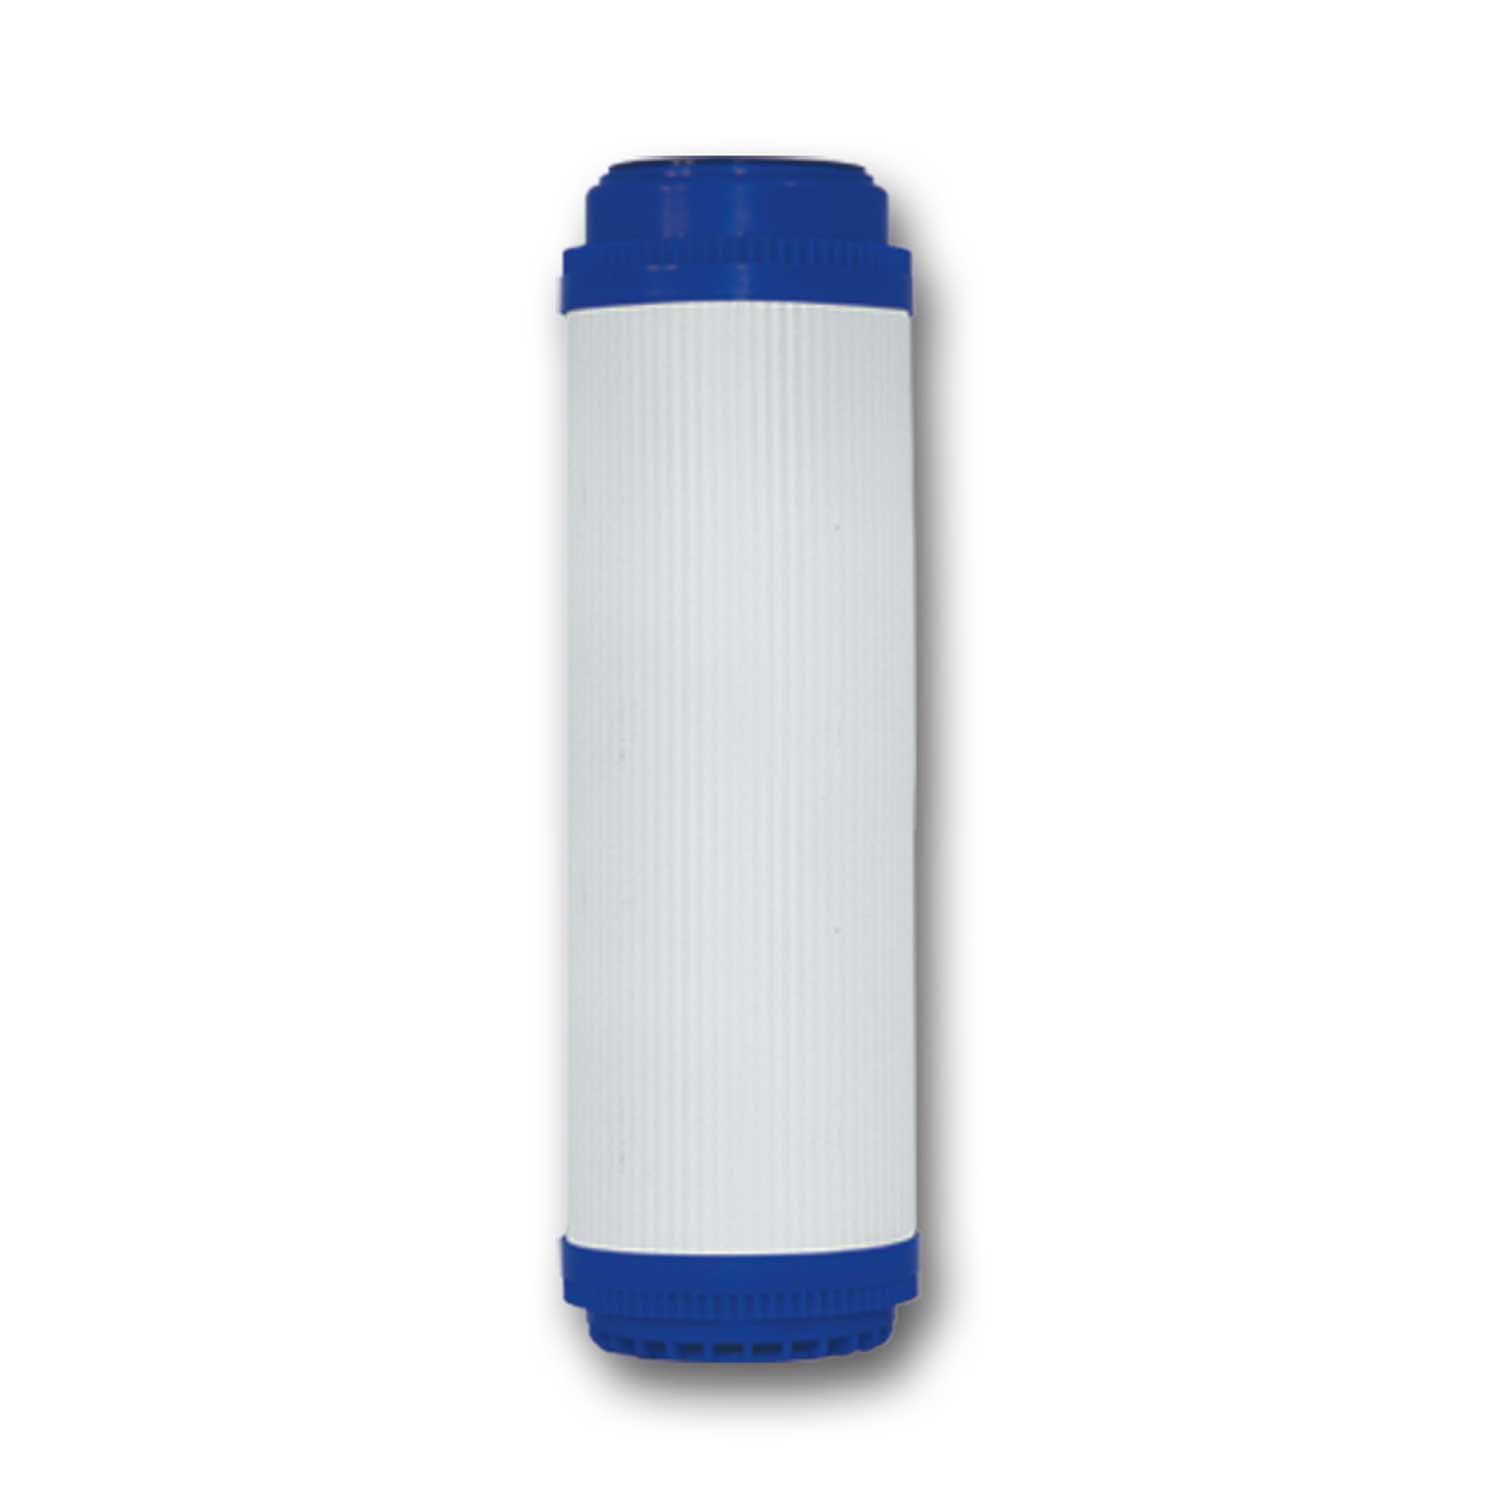 Coralife Pure Flo II Reverse Osmosis Granulated Activated Carbon Pre-Filter Cartridge